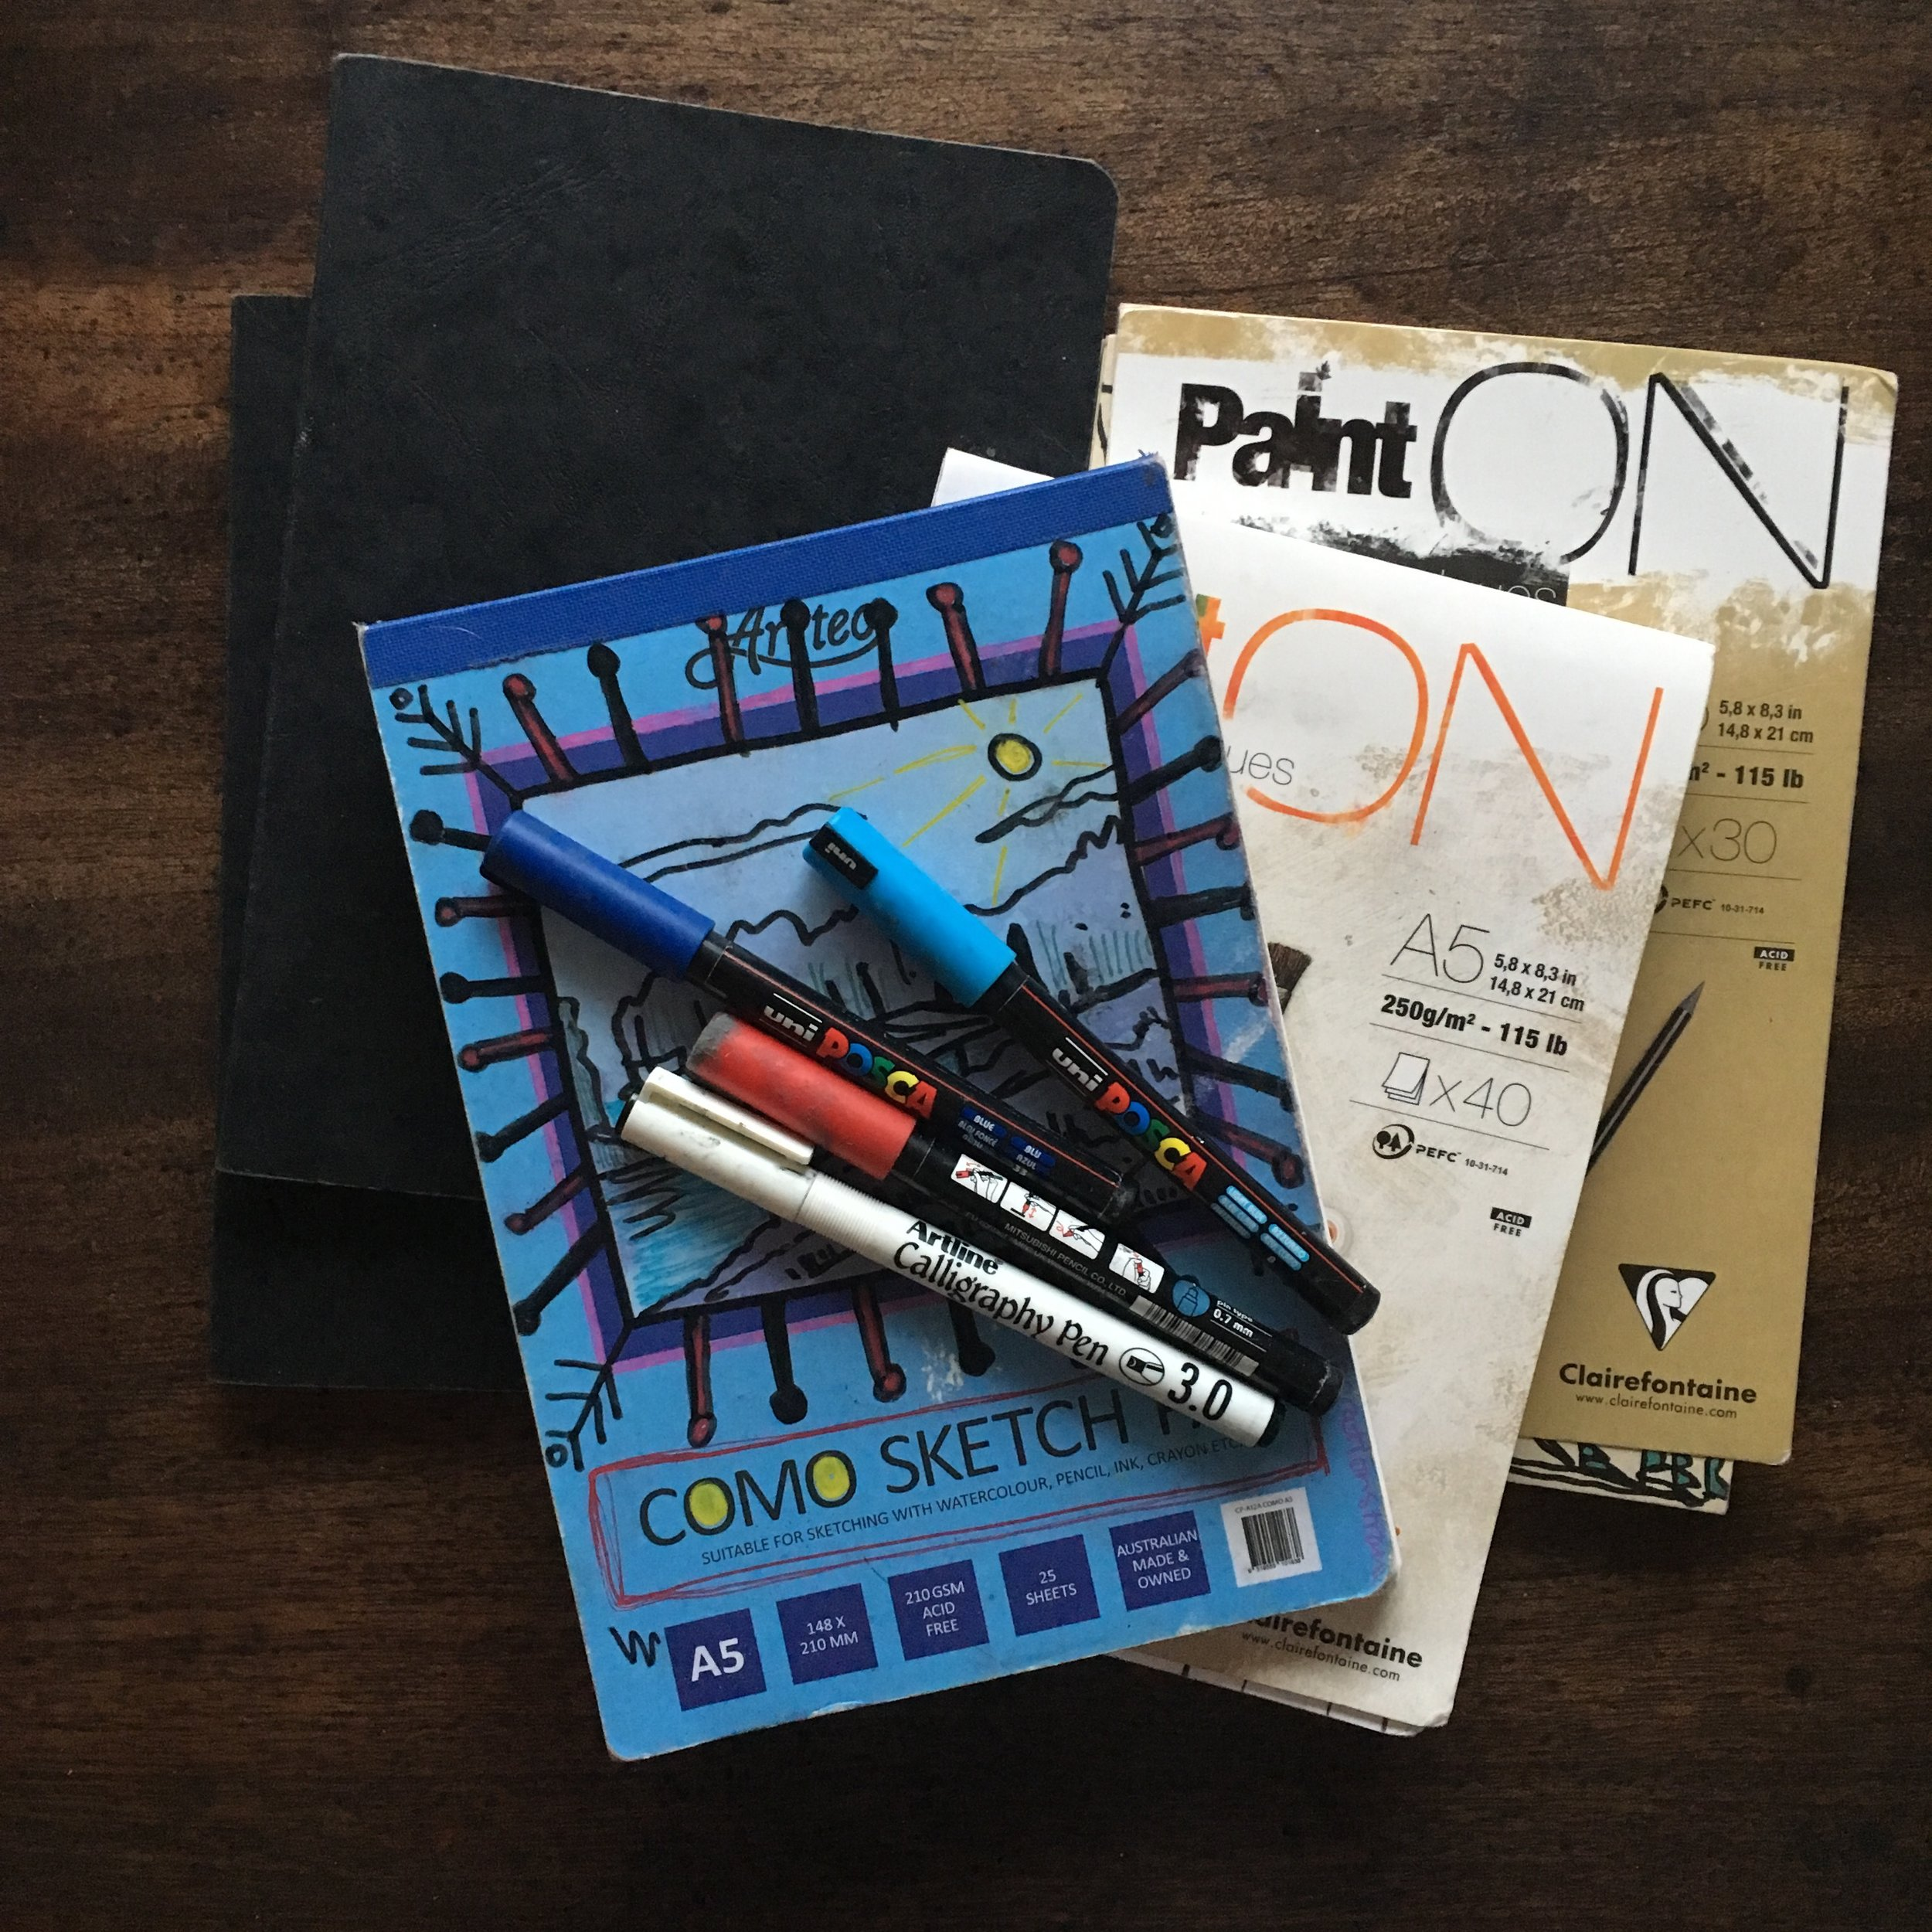 You don't need much to get started! Just a sketchbook, some drawing weapons of choice, your eyes, hand and a bit of trust in the process.